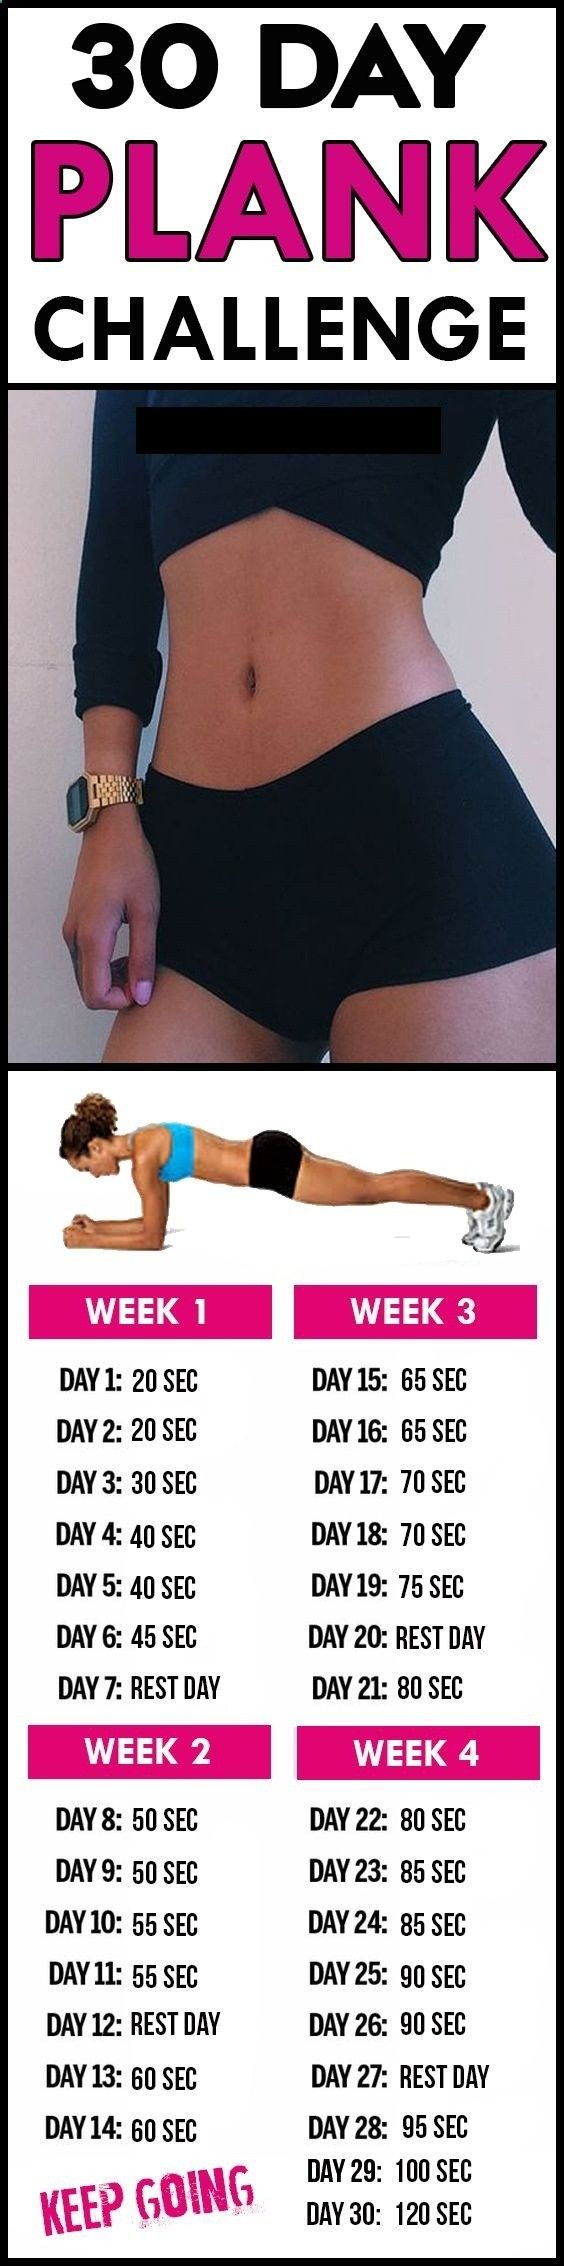 how to reduce tummy fat in 7 days, how to lose belly fat in 1 week and get flat stomach, how to lose belly fat in a week without exercise, how to reduce belly fat by exercise, how to reduce tummy in a week at home with images, how to reduce belly in a wee https://www.musclesaurus.com/flat-stomach-exercises/